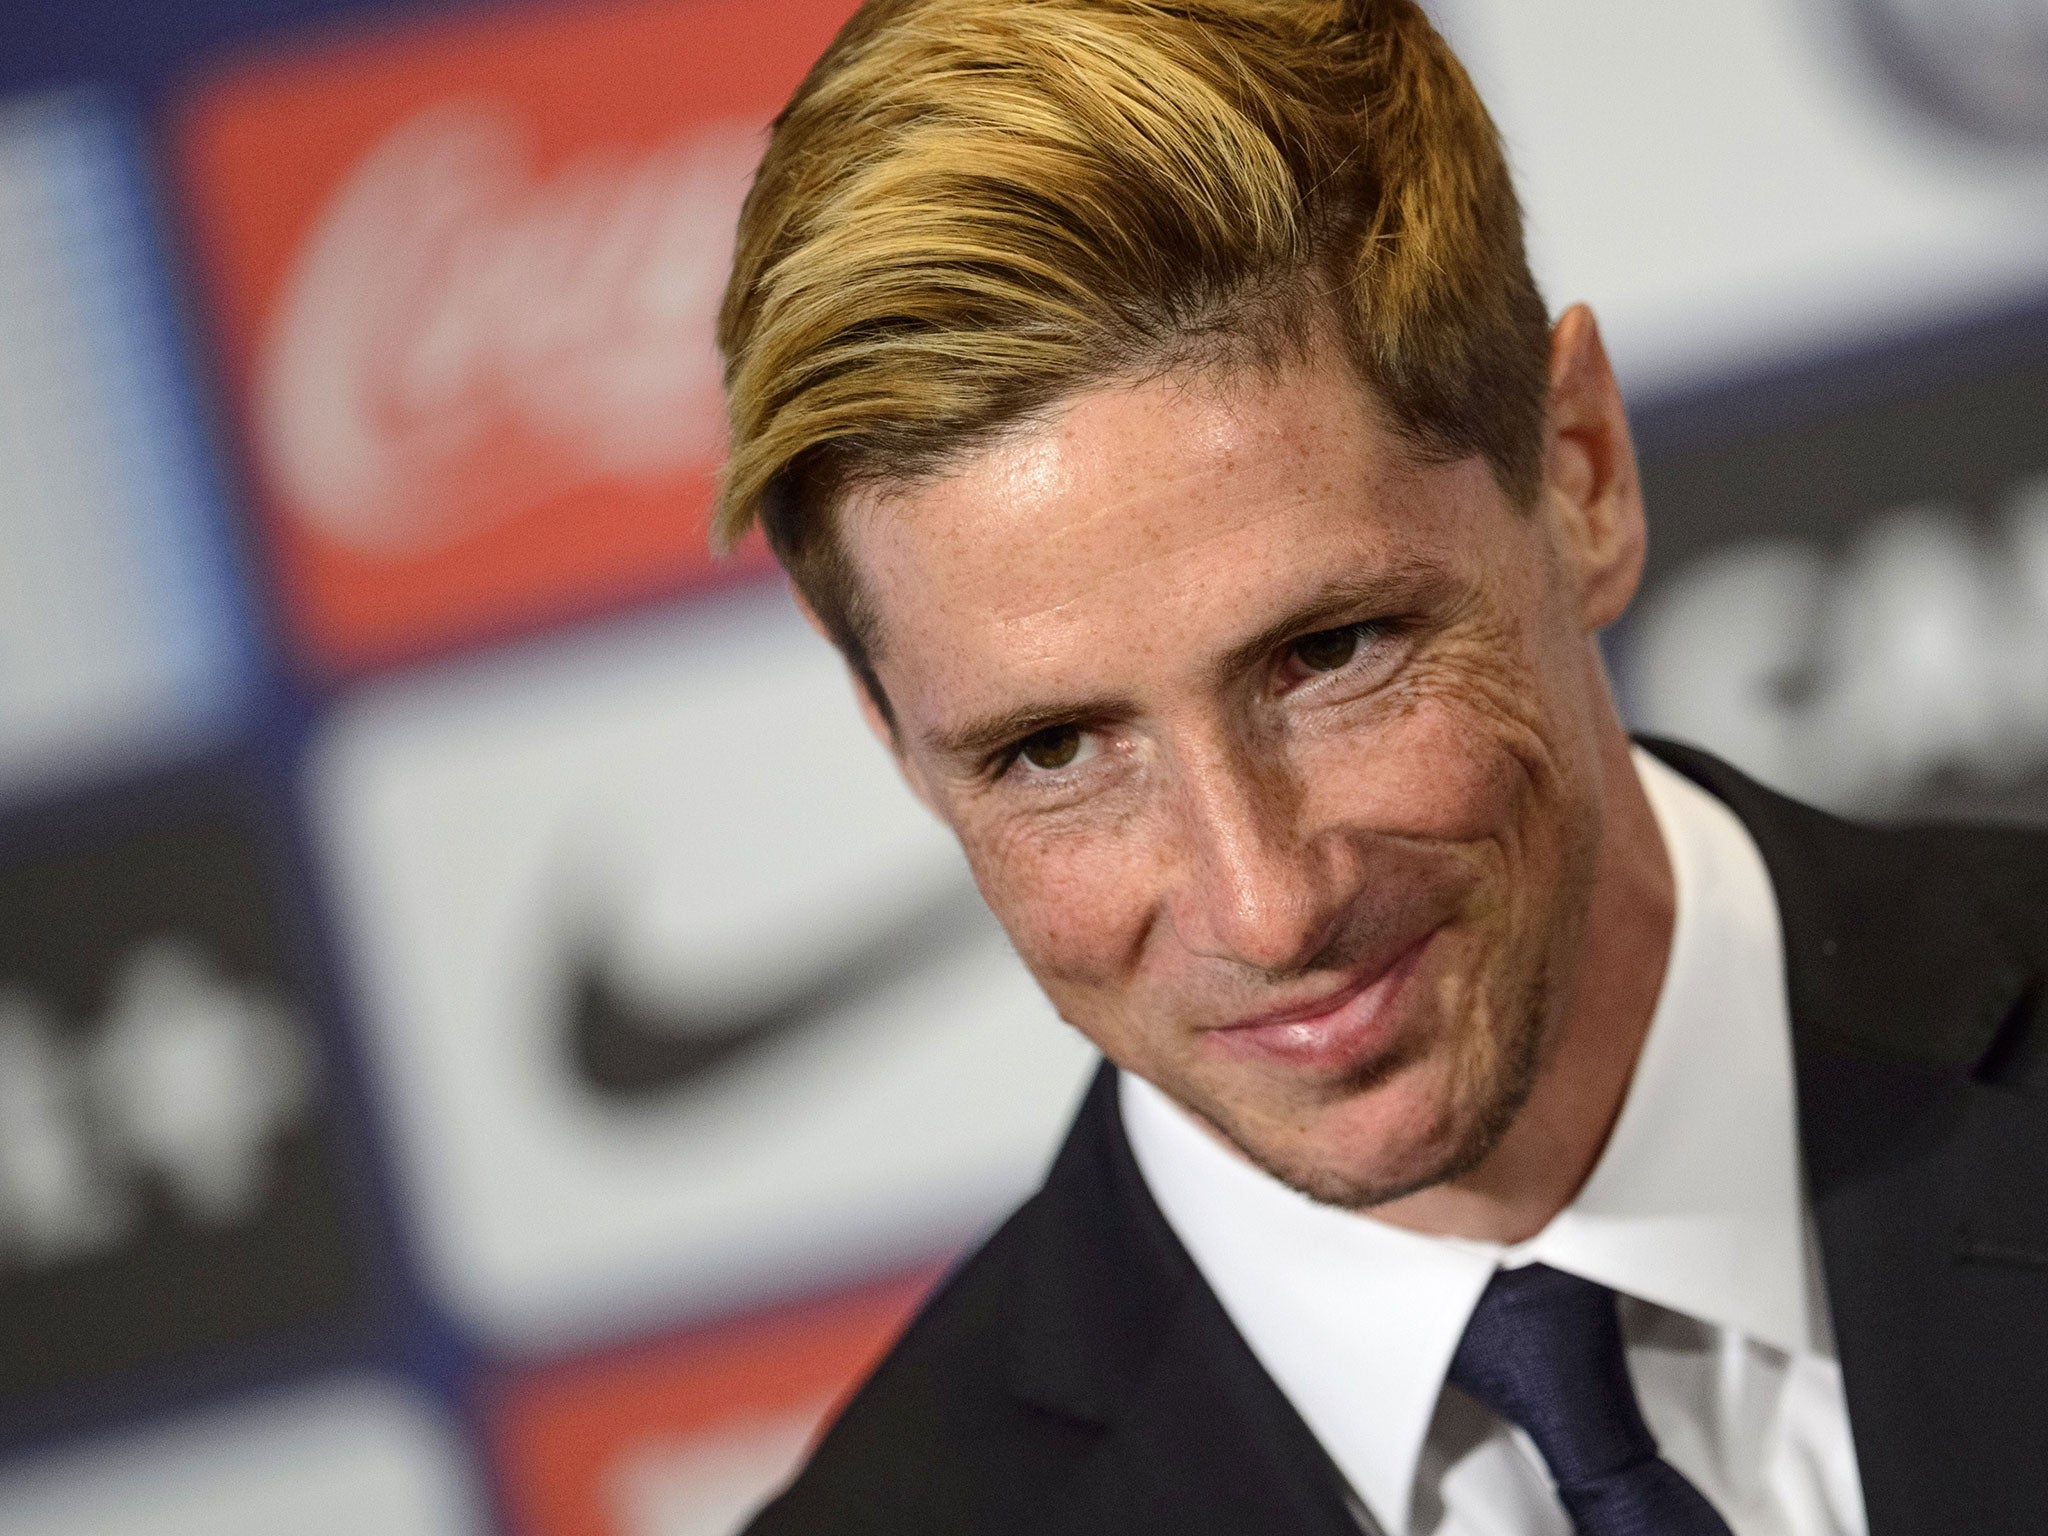 fernando torres unveiled at atletico madrid: 40,000 fans put smile